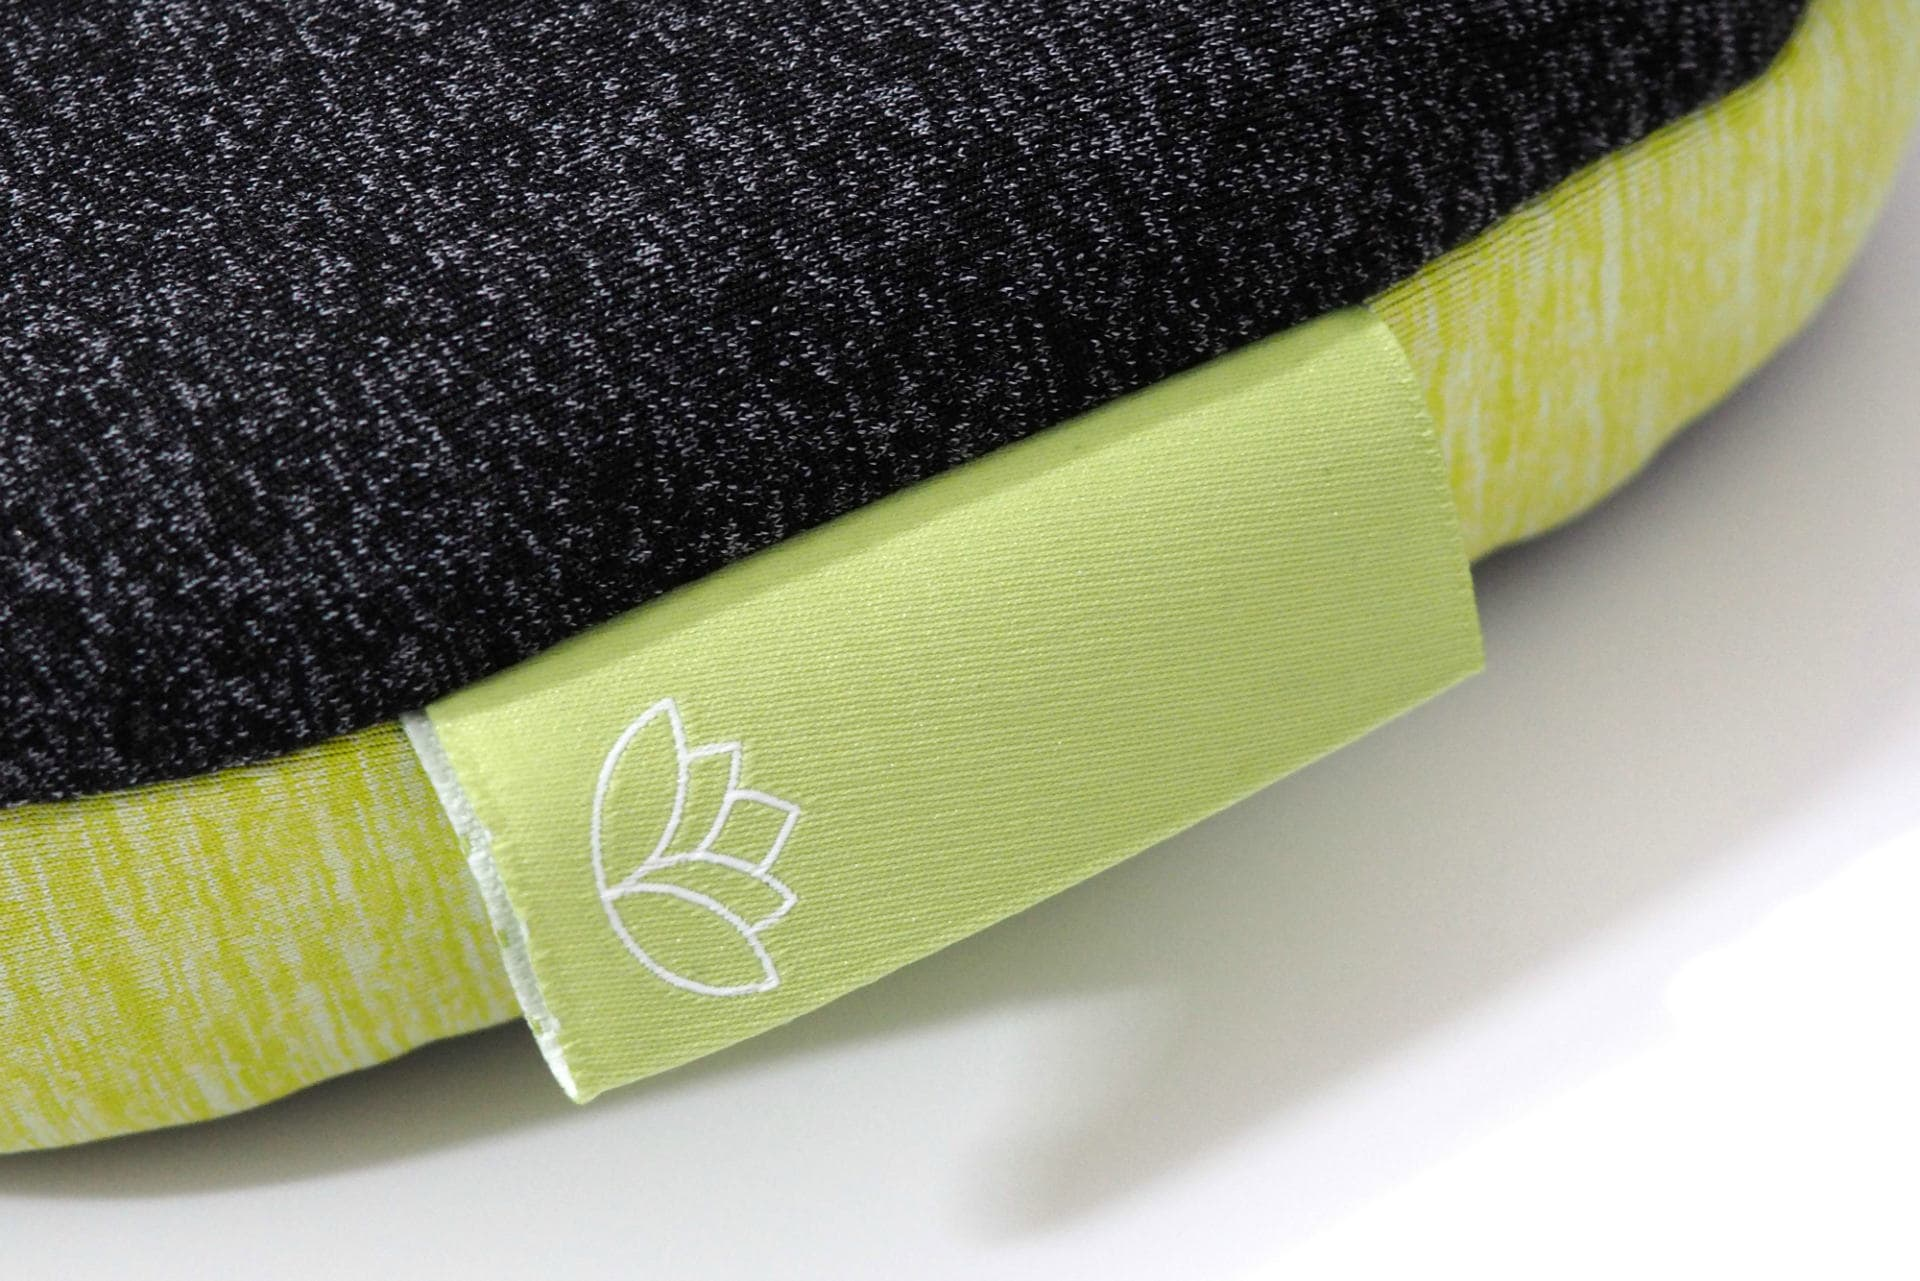 stretch now yoga mat review